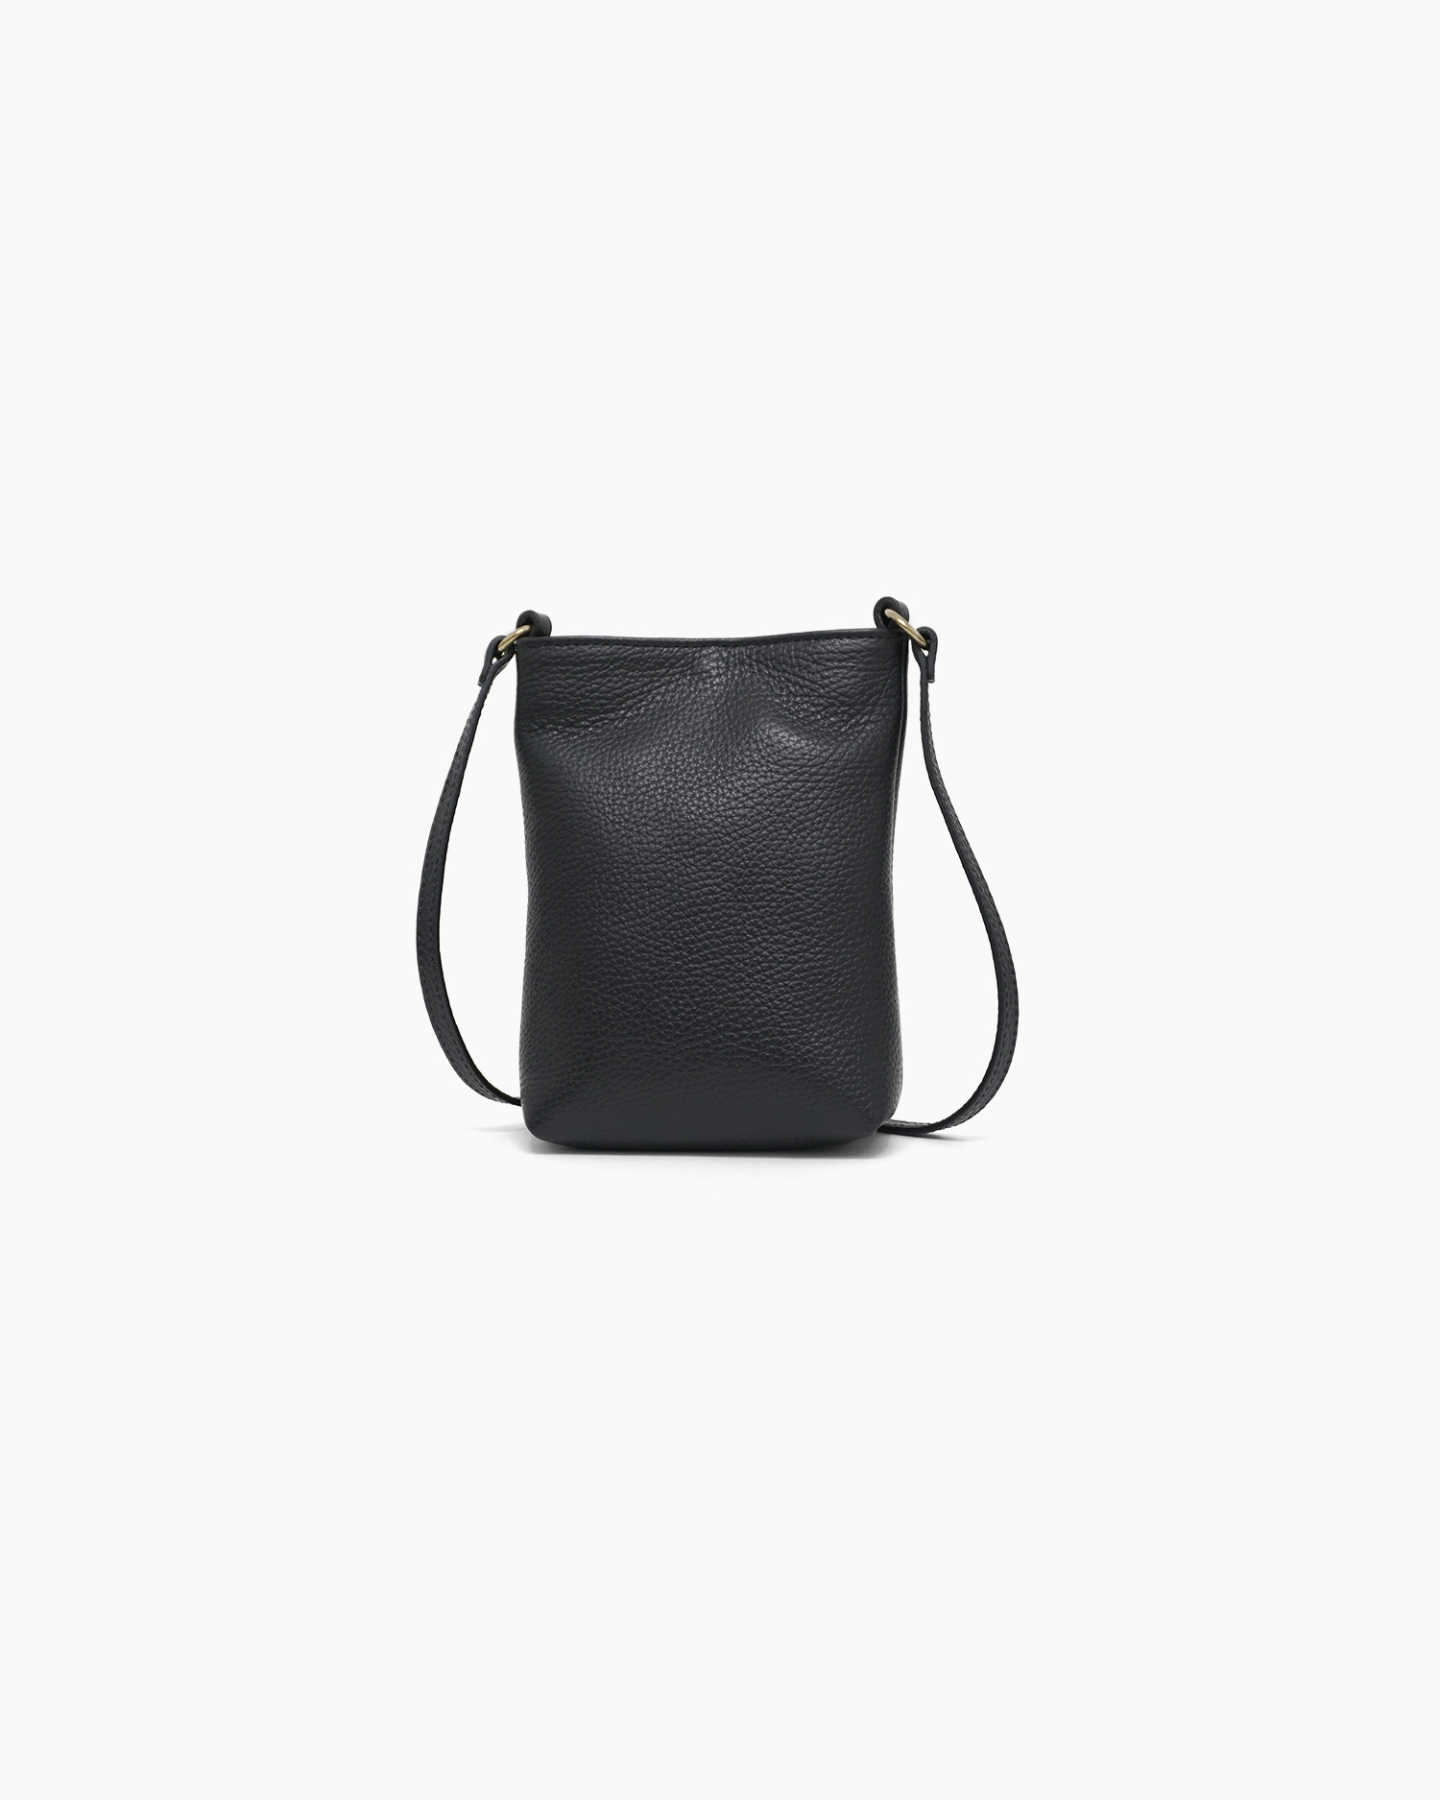 Italian Pebbled Leather Phone Crossbody - Black - 10